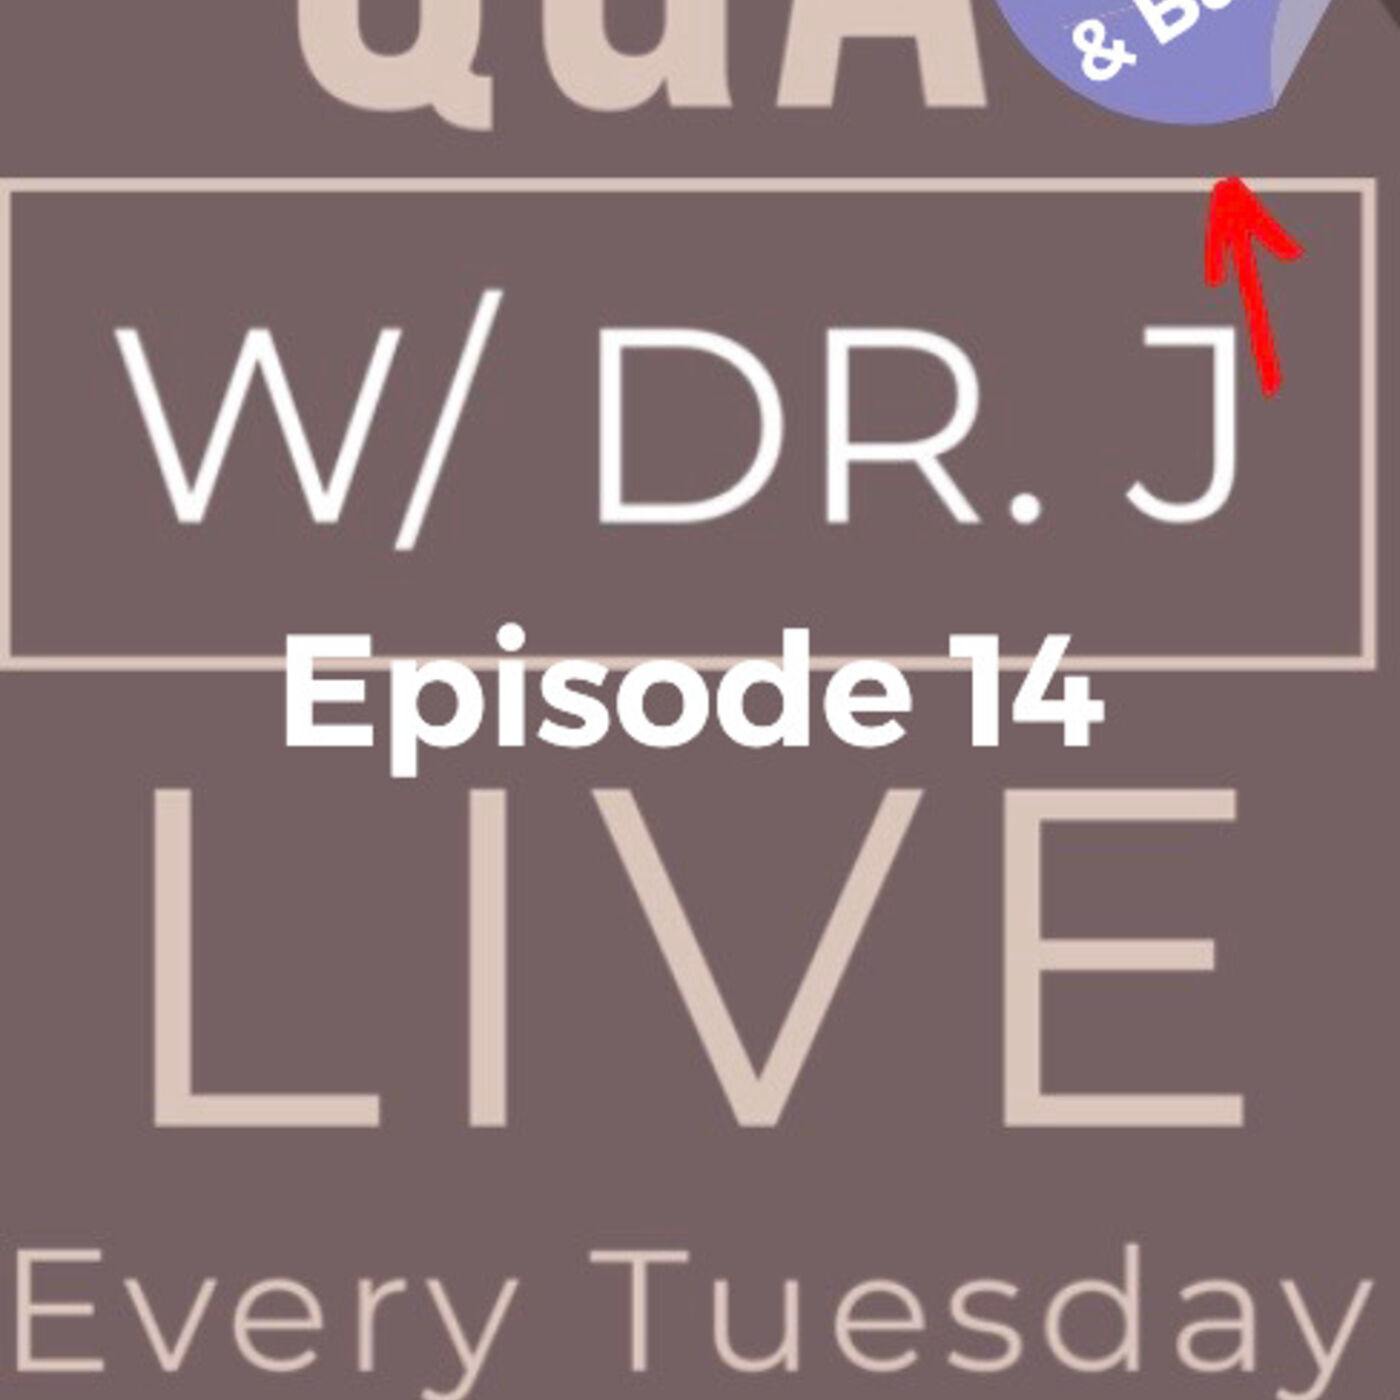 EP 14 Q&A with Dr. Jeneby |  Boobs butts and backs